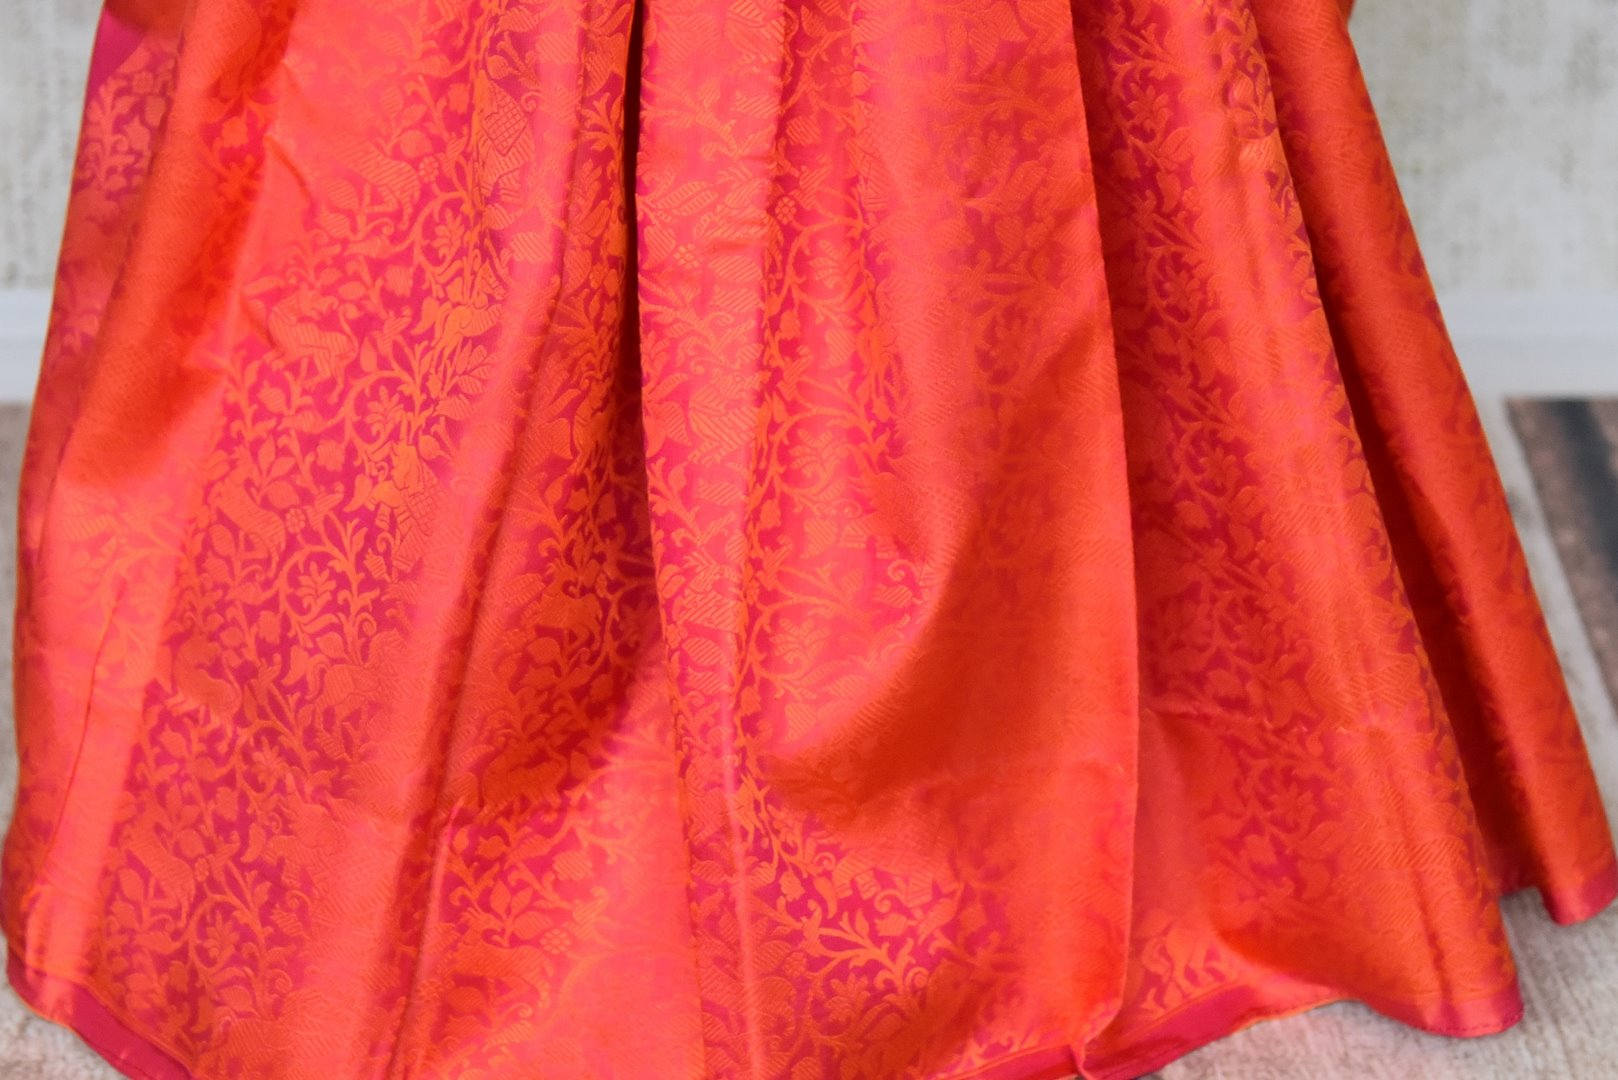 Buy orange Kanjeevaram sari online in USA with jacquard weave and pink zari pallu. Elevate your traditional style with exquisite Indian designer sarees from Pure Elegance Indian clothing store in USA. Explore a range of stunning silk sarees, embroidered sarees, wedding sarees especially from India for women in USA.-pleats